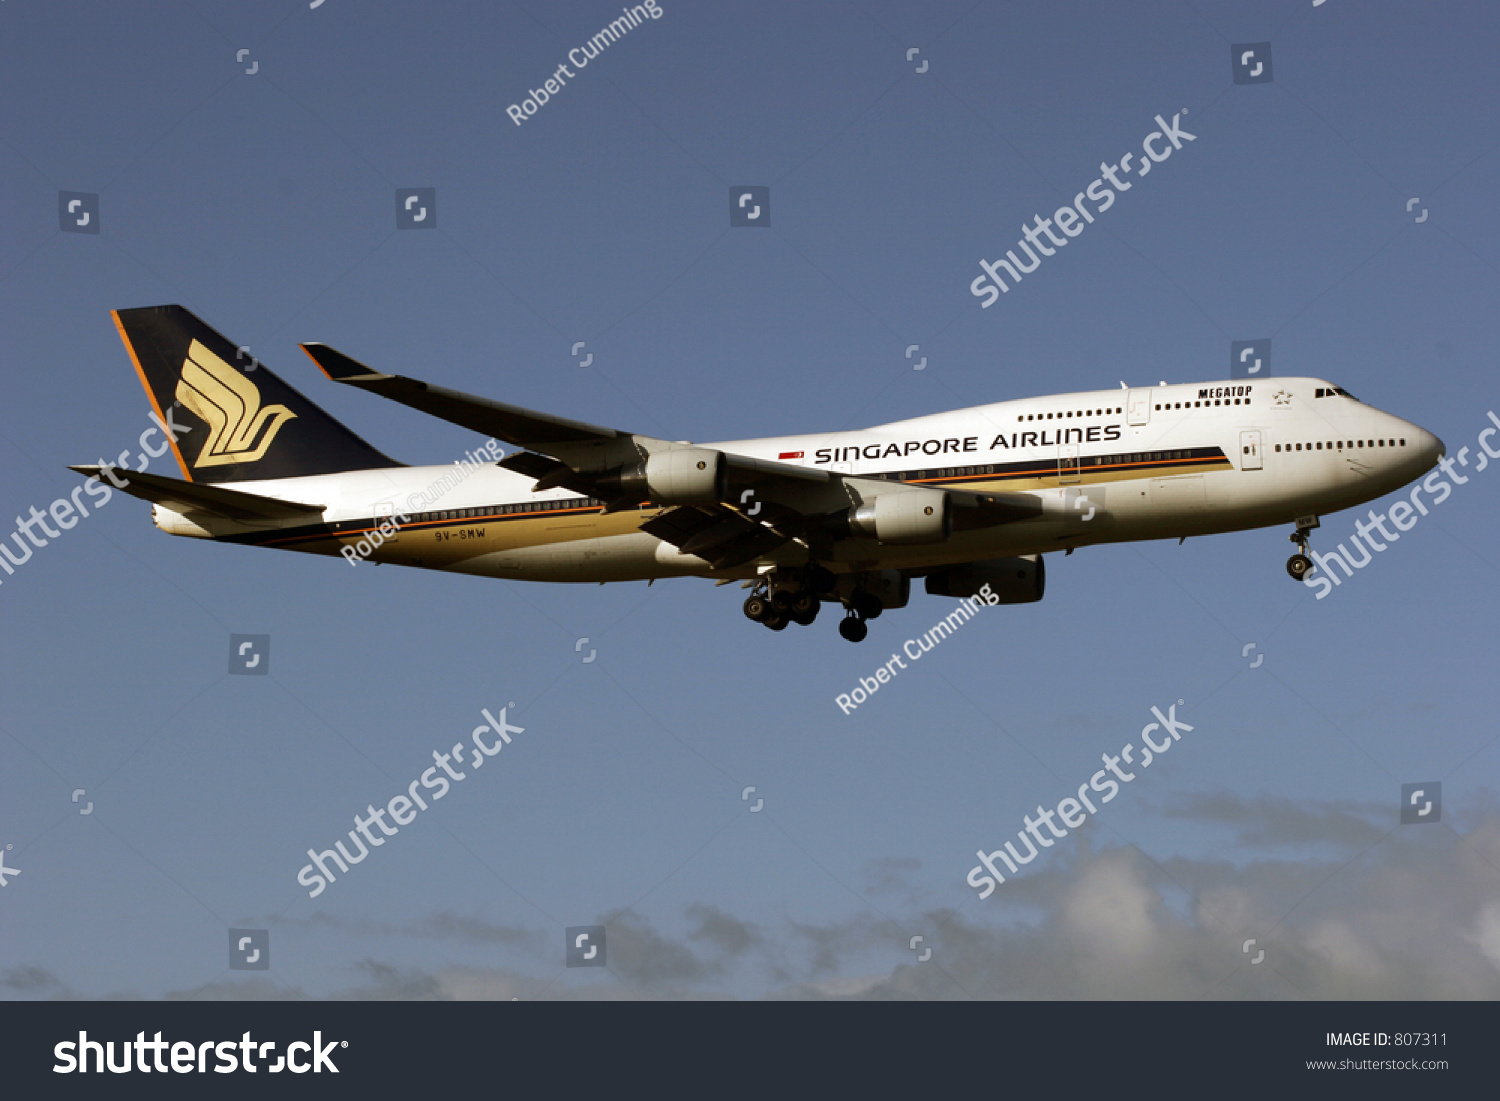 Singapore airlines stock options